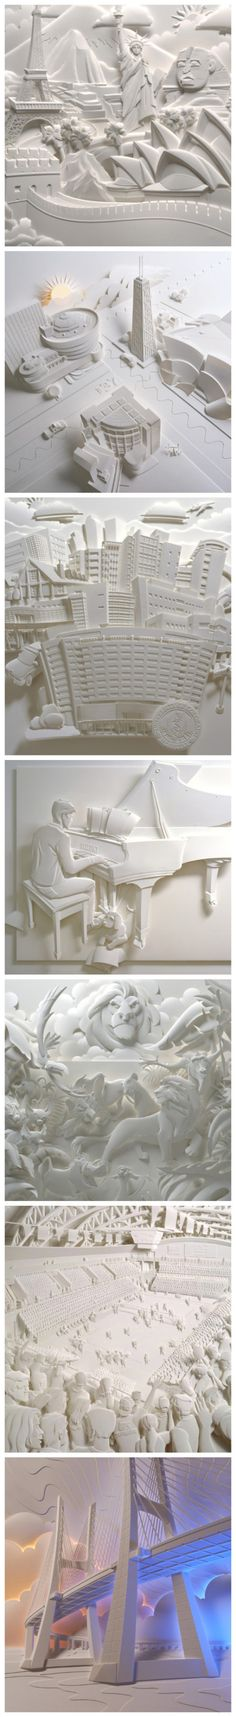 Can't find artist. From: Top Creative Works » 7 delicate paper engraving artworks